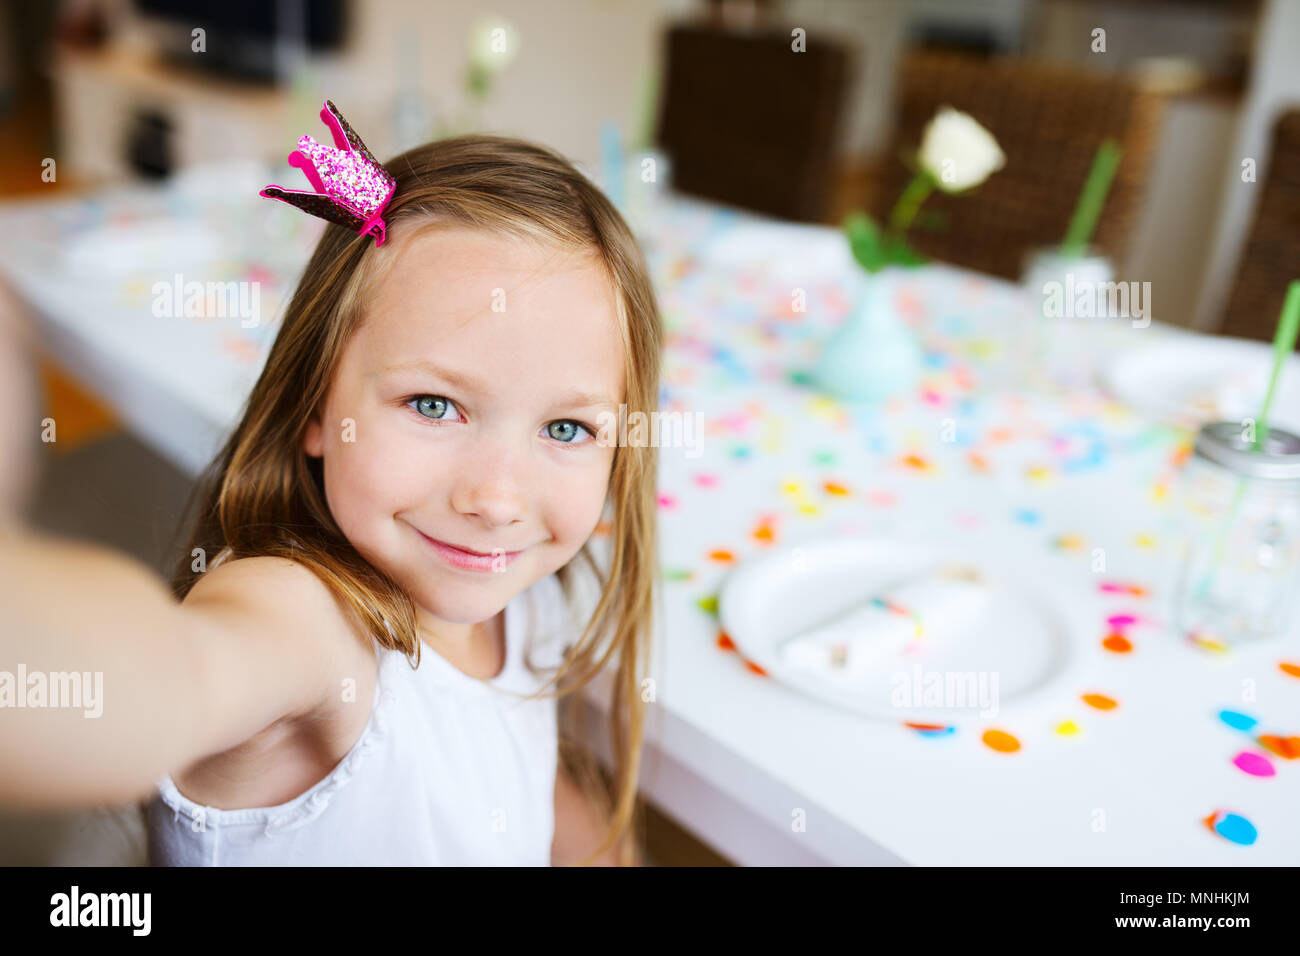 Adorable little girl with princess crown at kids birthday party making selfie - Stock Image